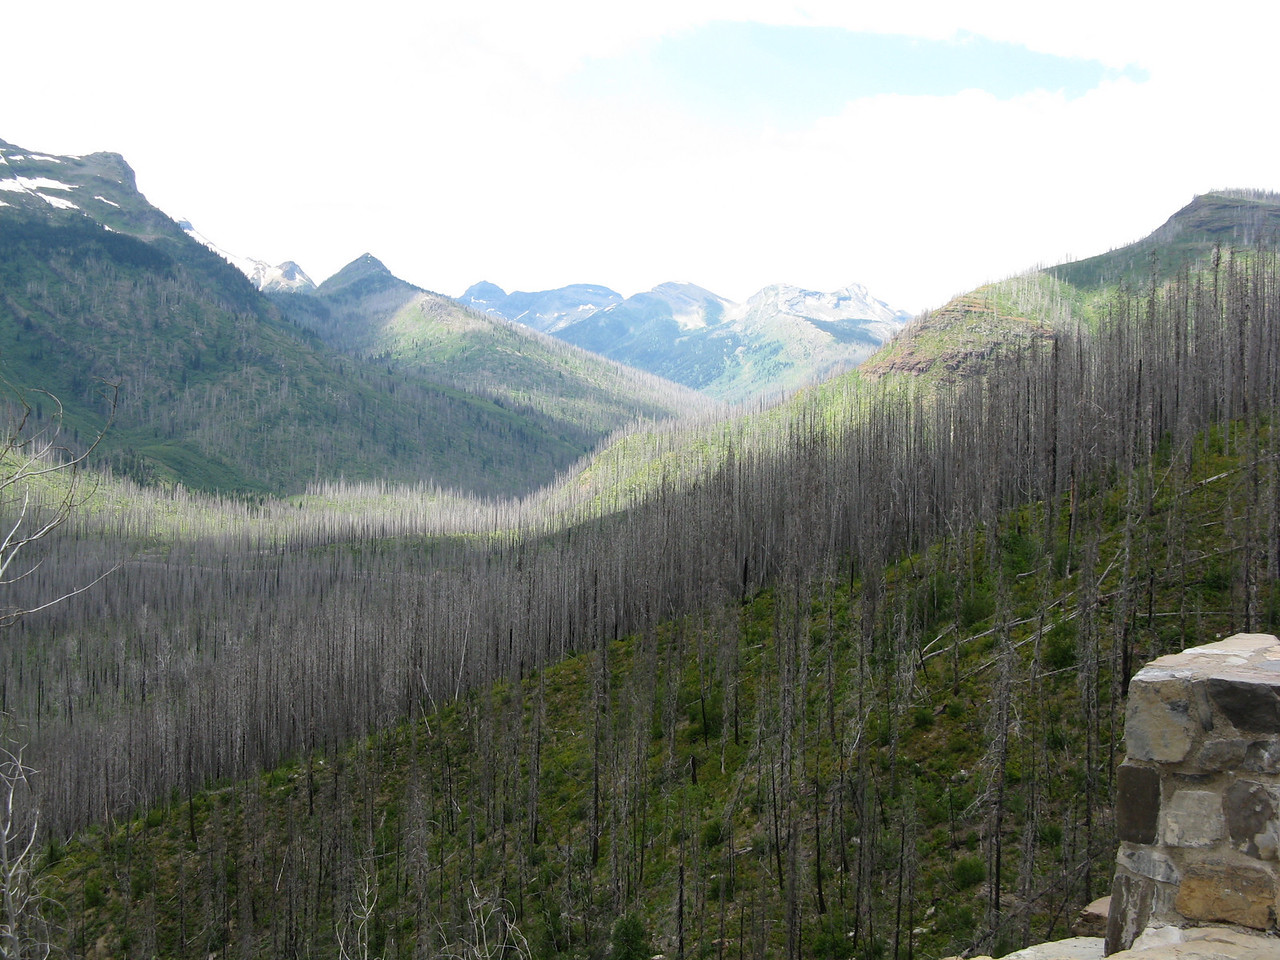 Looking up McDonald Creek valley, we see gray trees that have been ravaged by frequent fires within the park.